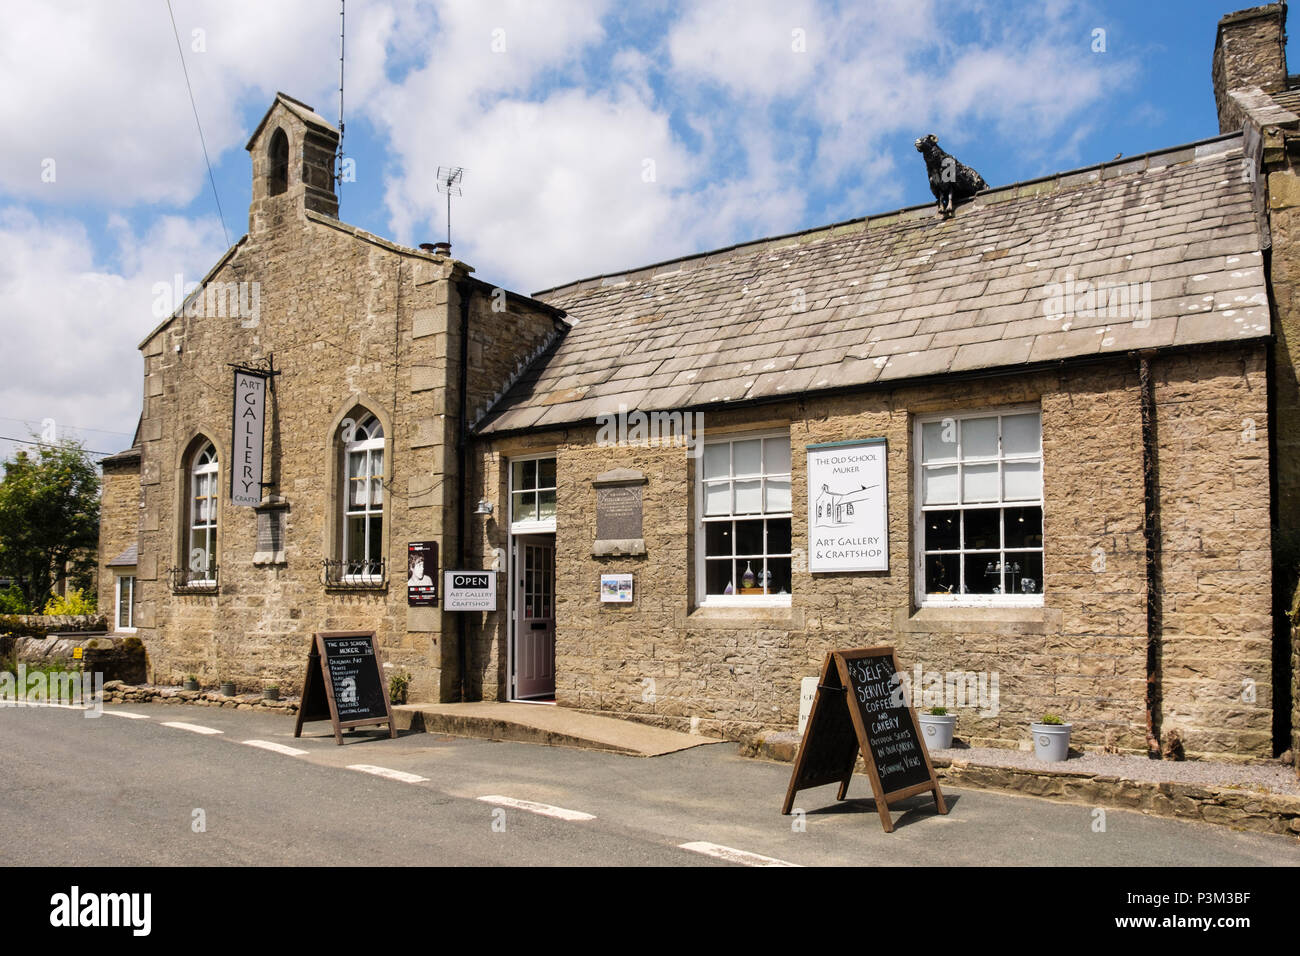 Art Gallery and Craftshop in the old school. Muker, Swaledale, Yorkshire Dales National Park, North Yorkshire, England, UK, Britain - Stock Image